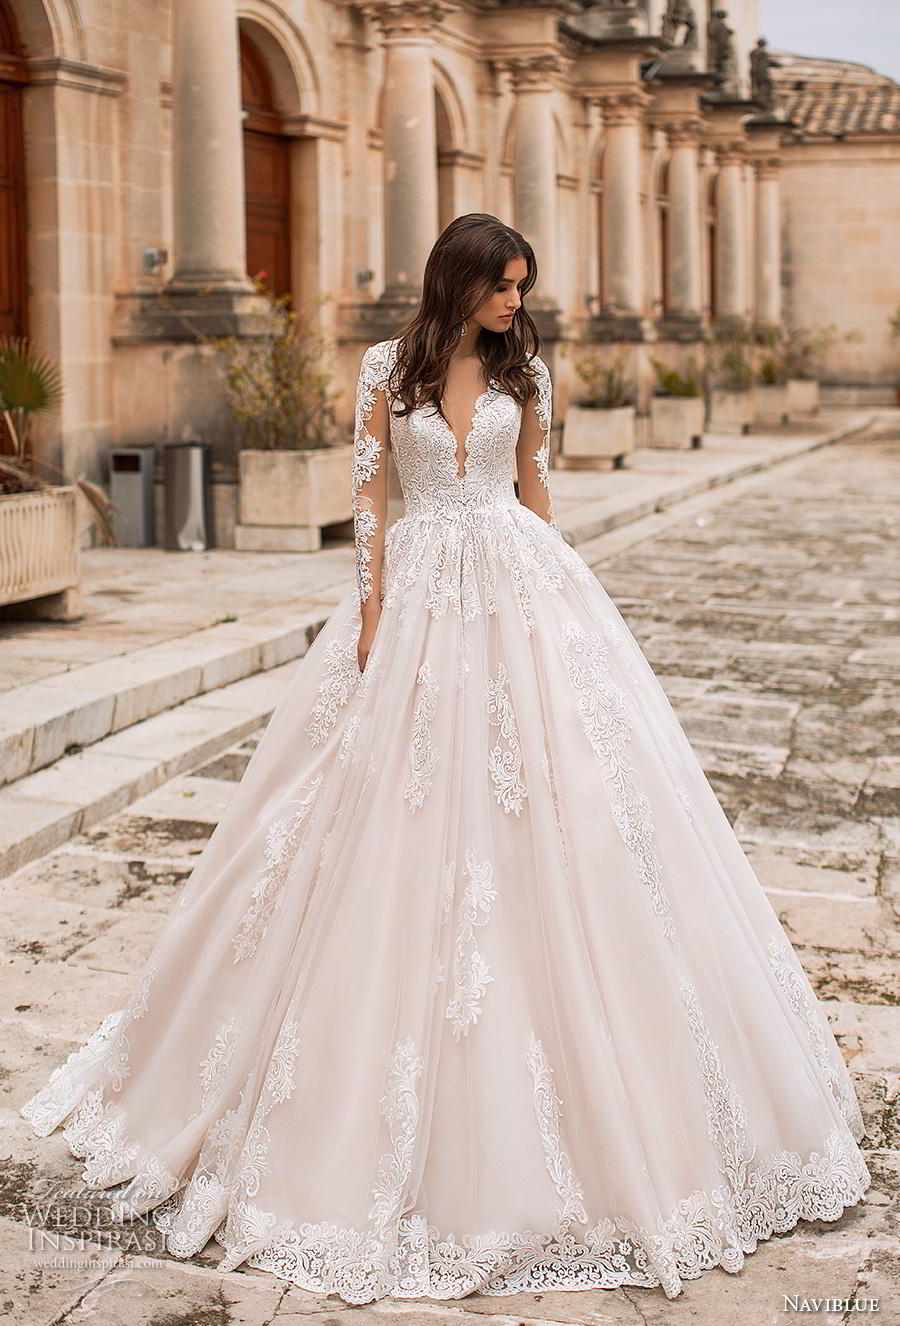 naviblue 2019 bridal long sleeves deep plunging v neck heavily embellished bodice princess romantic a line wedding dress sheer button back chapel train (7) mv